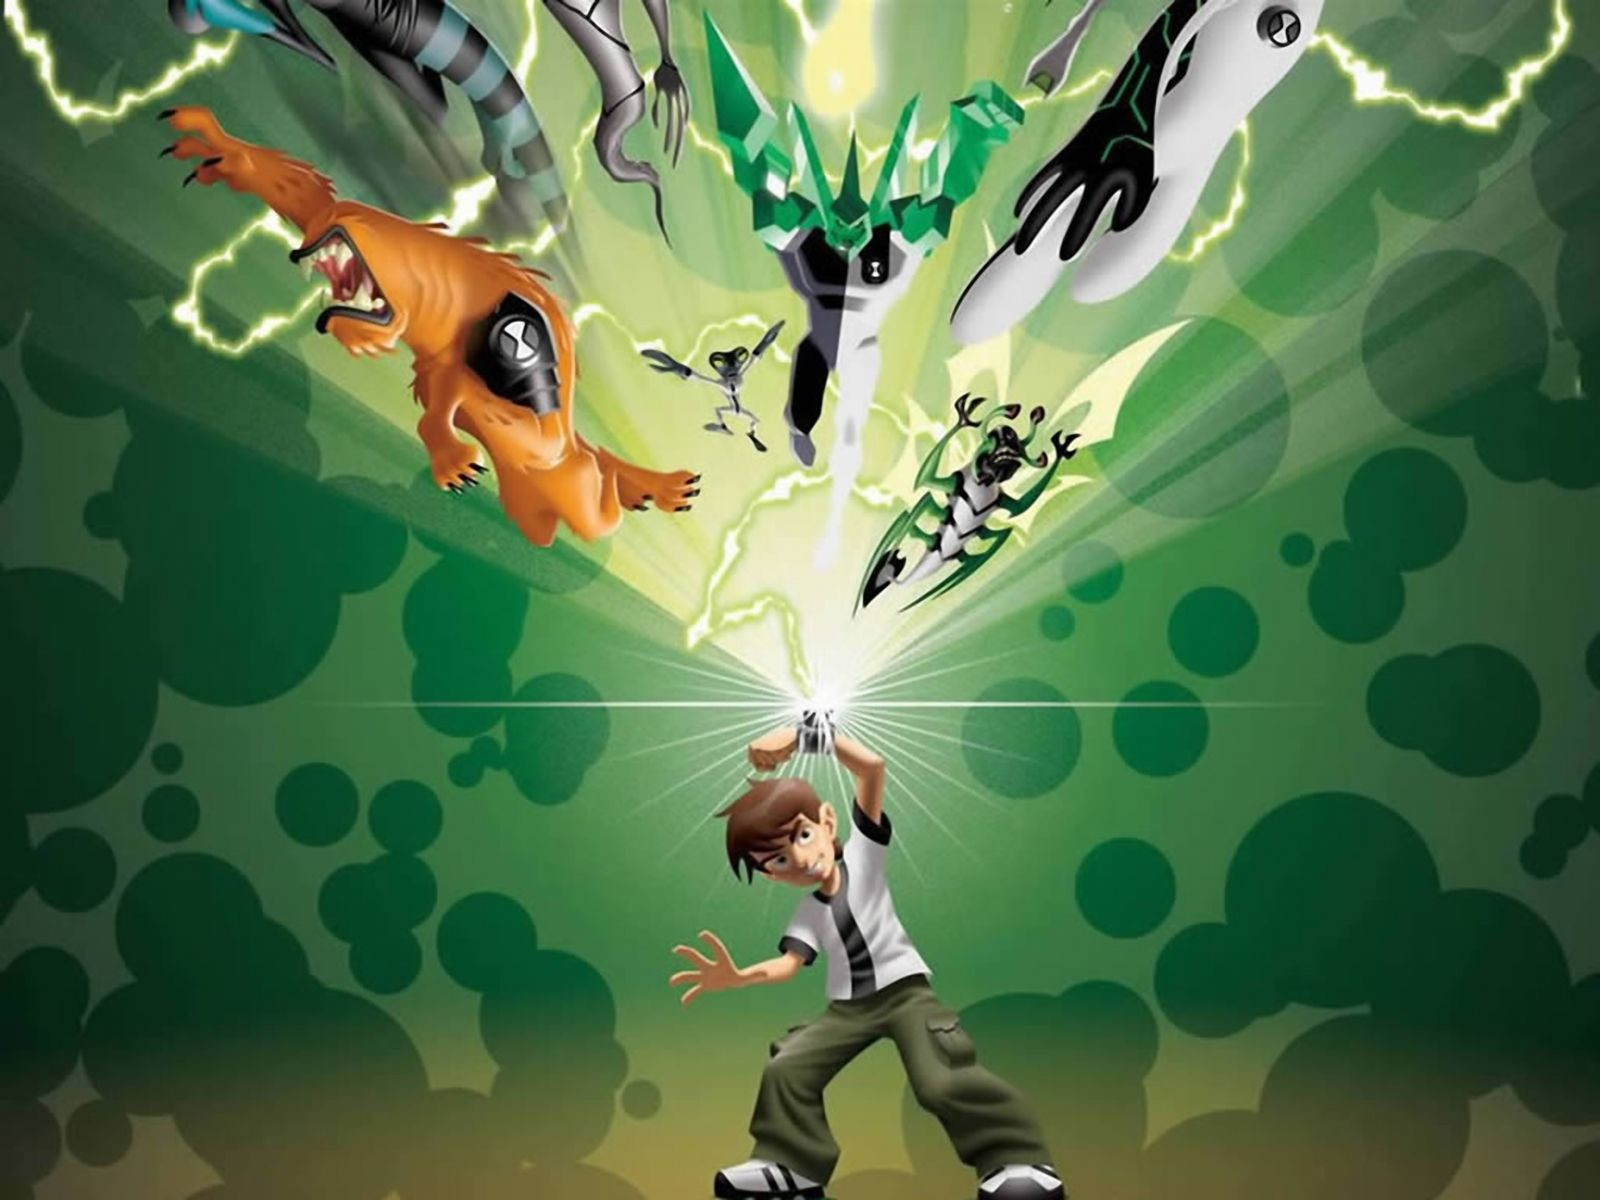 Ben 10 Alien Force Hd Wallpaper Animation Wallpapers Ben 10 Alienígenas Tigres